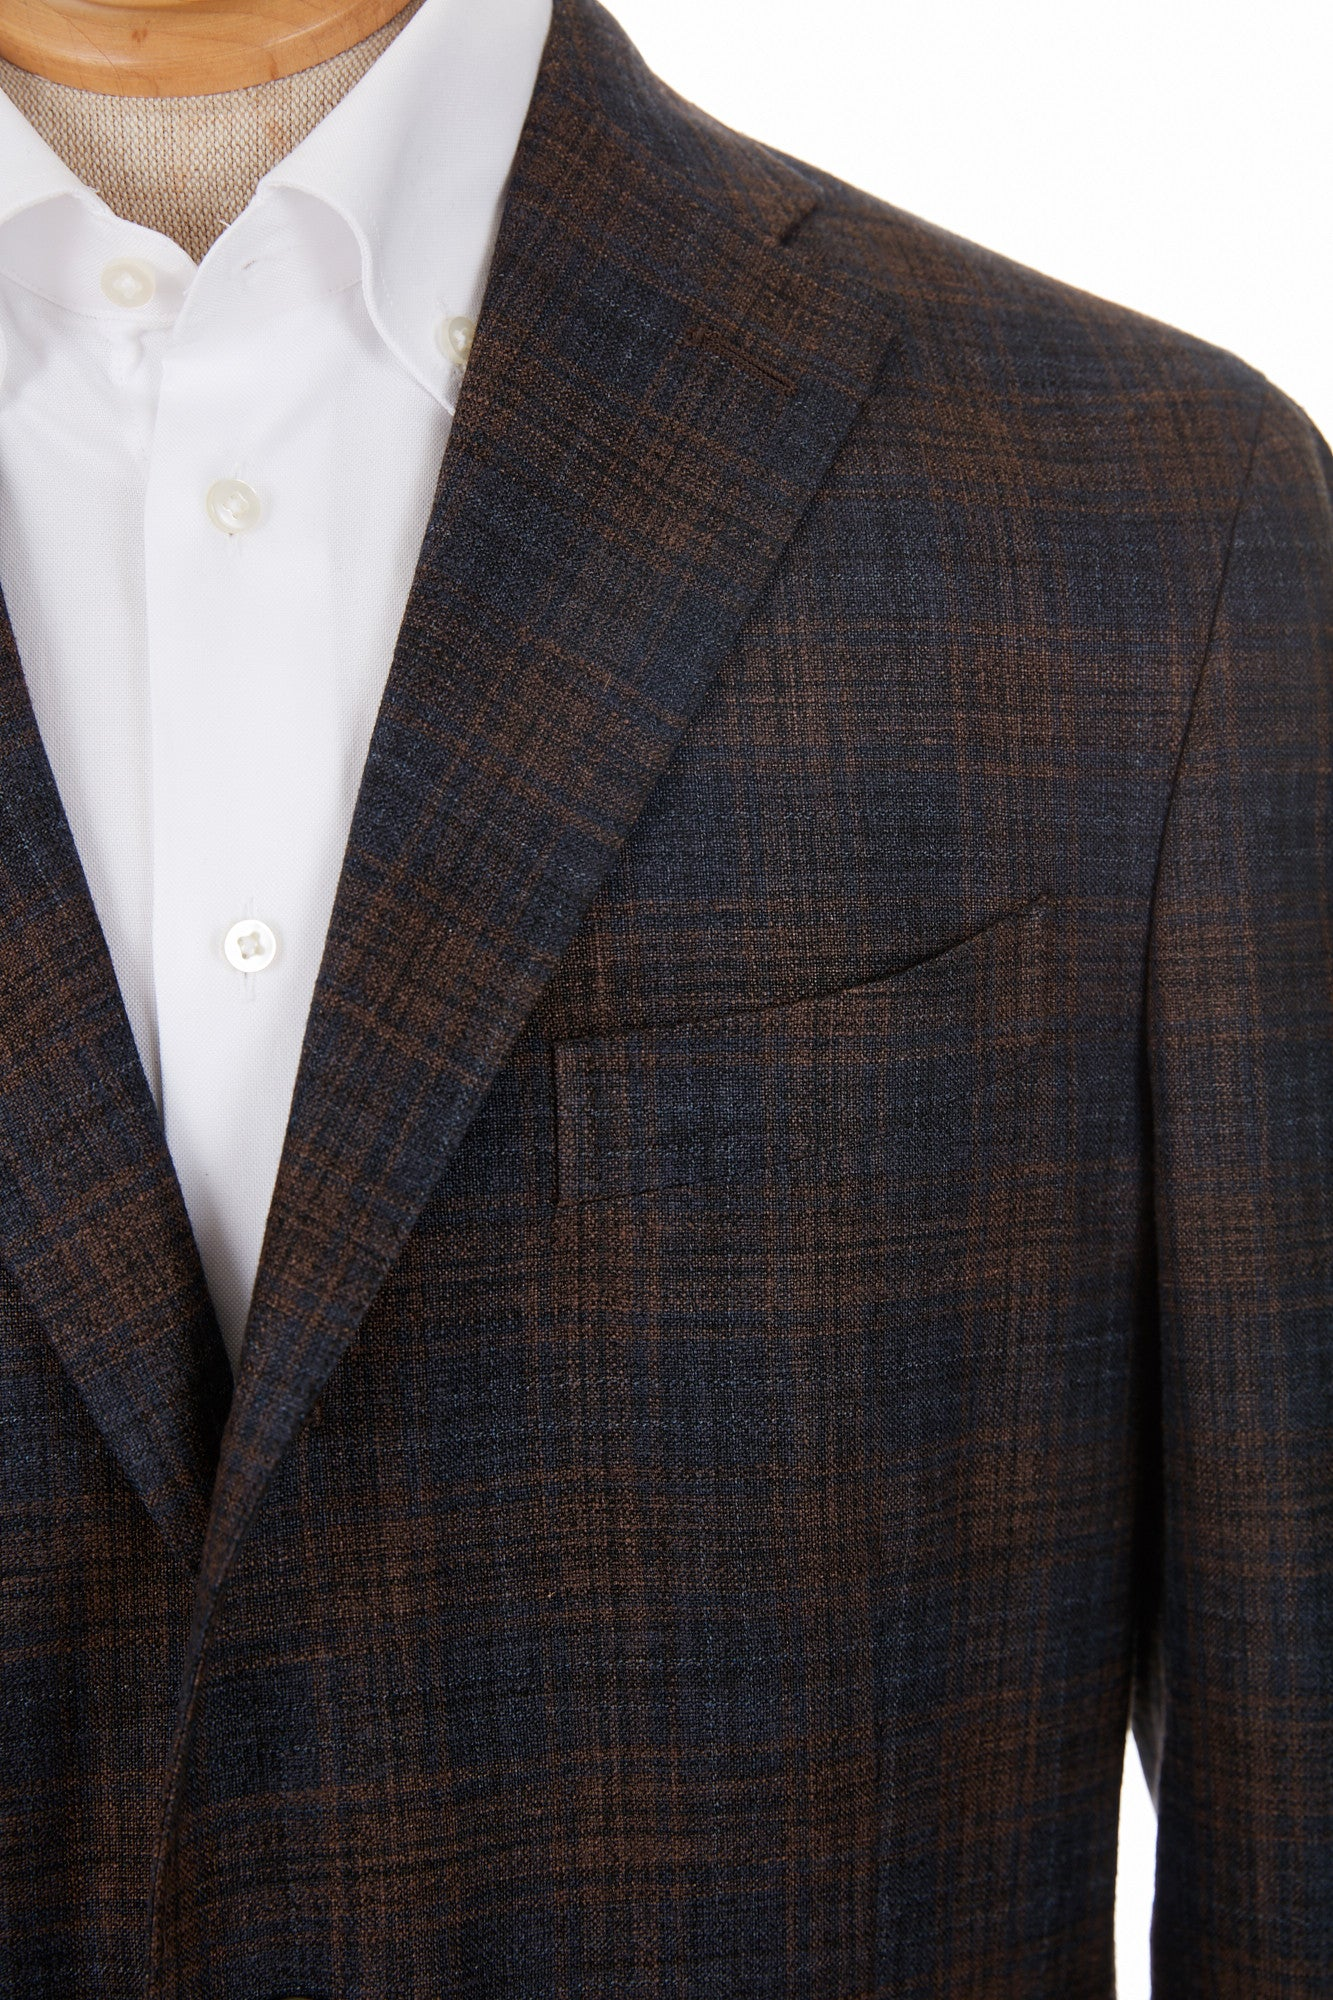 Boglioli 'K-Jacket' Brown & Navy Check Sport Jacket - Blazer, Sport Coat -Model: N2902E. Pocket